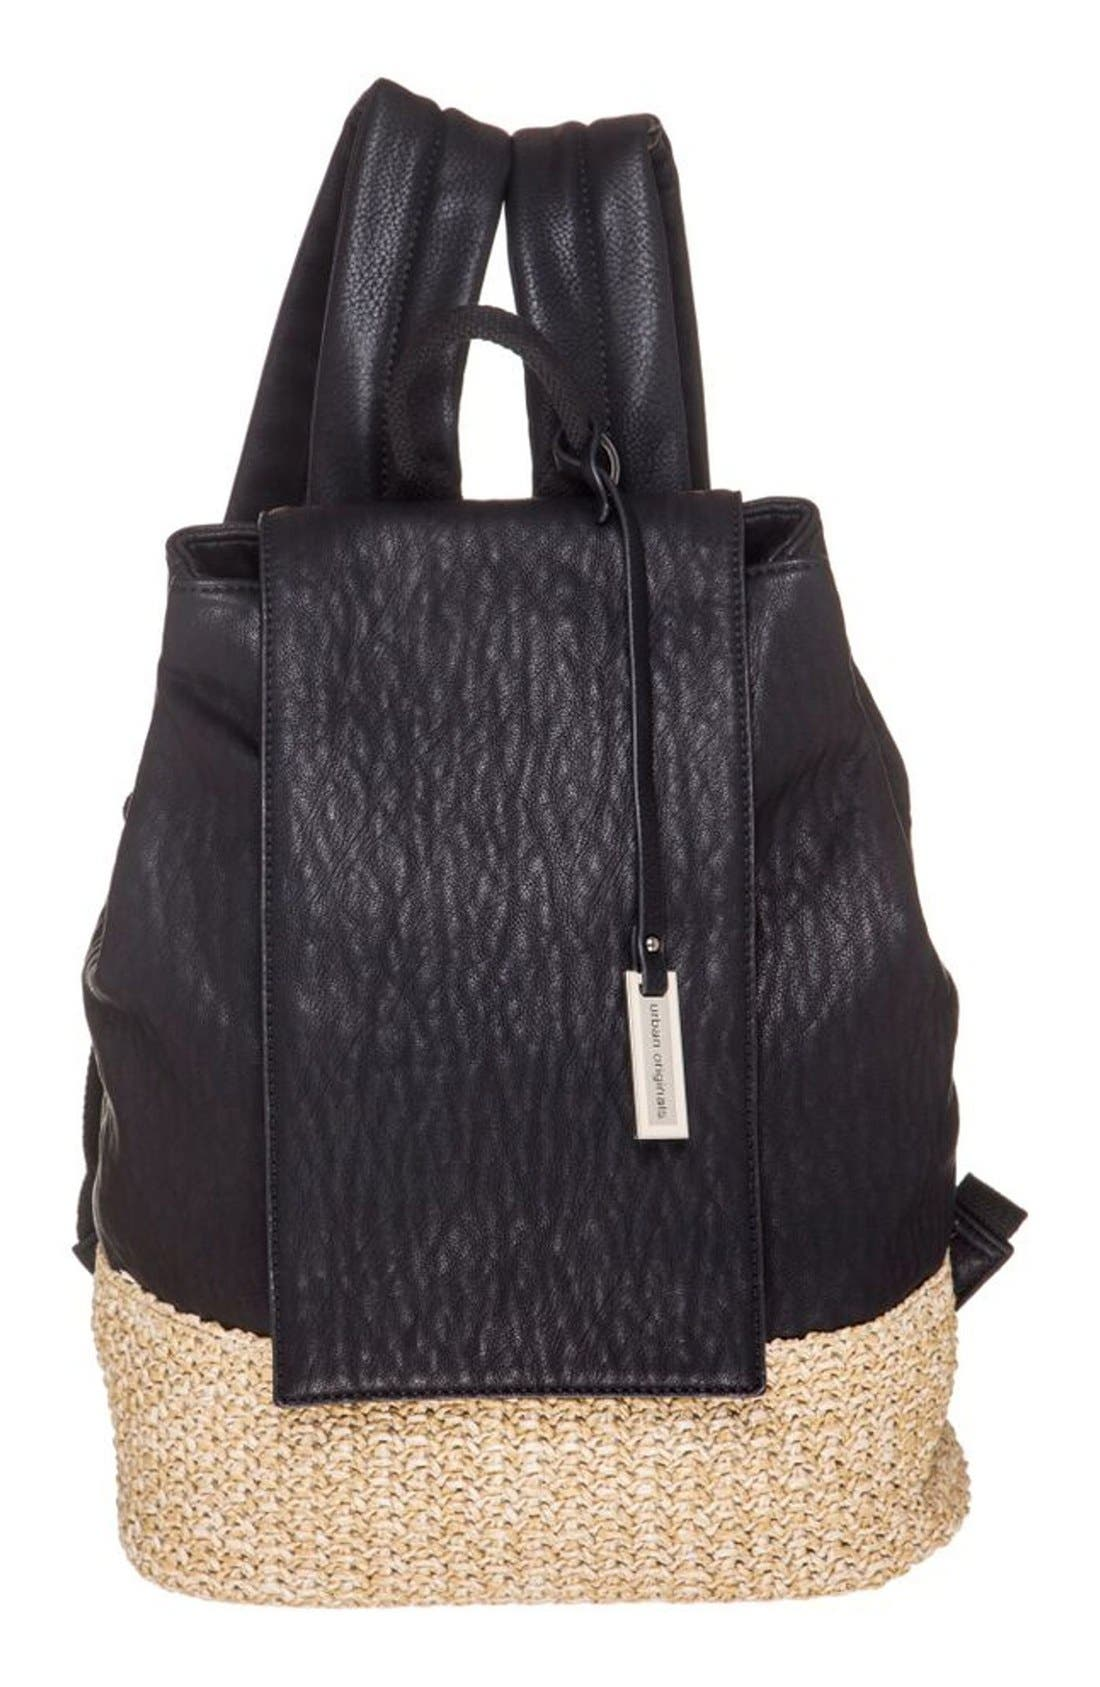 Main Image - Urban Originals 'Dune Diamond' Faux Leather & Straw Backpack